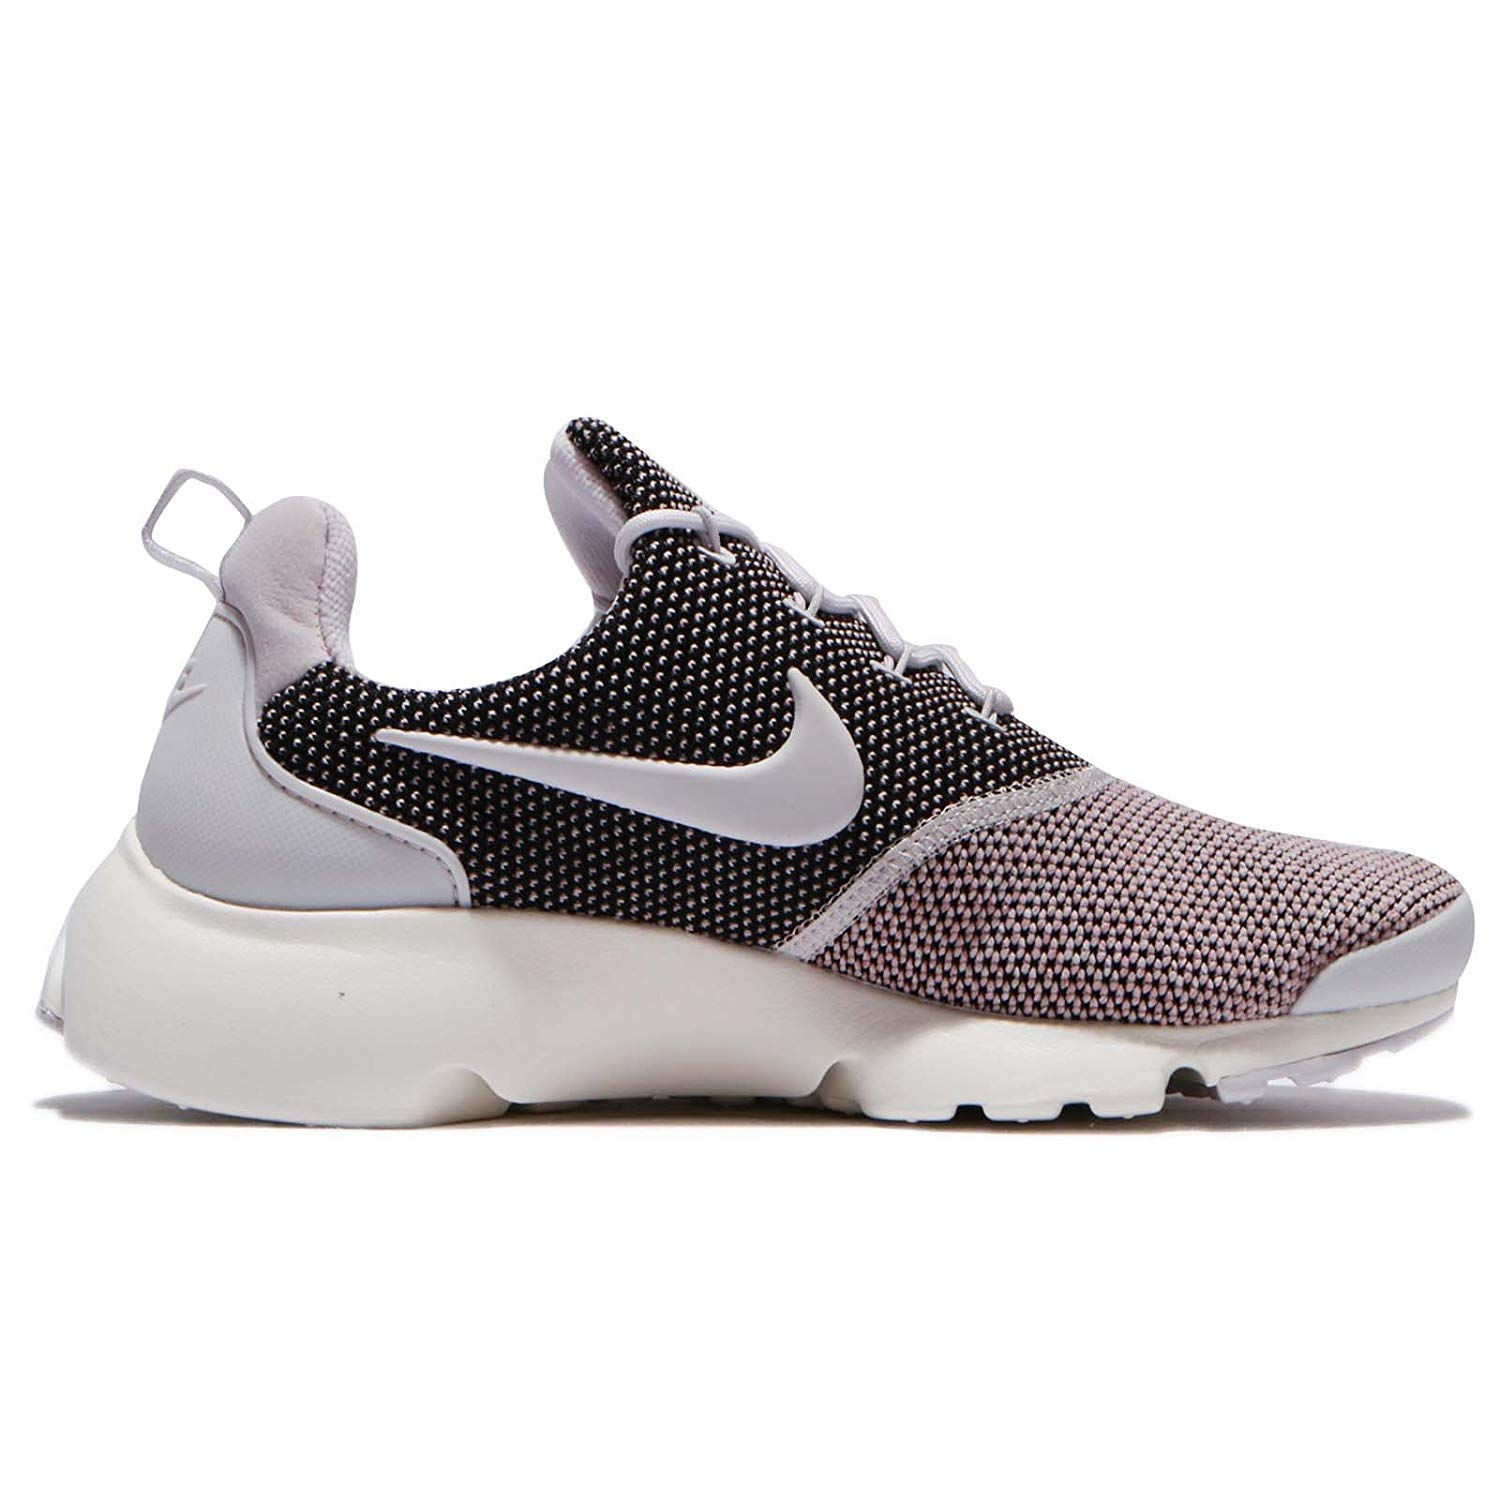 Nike Women s Presto Fly Low-Top Sneakers